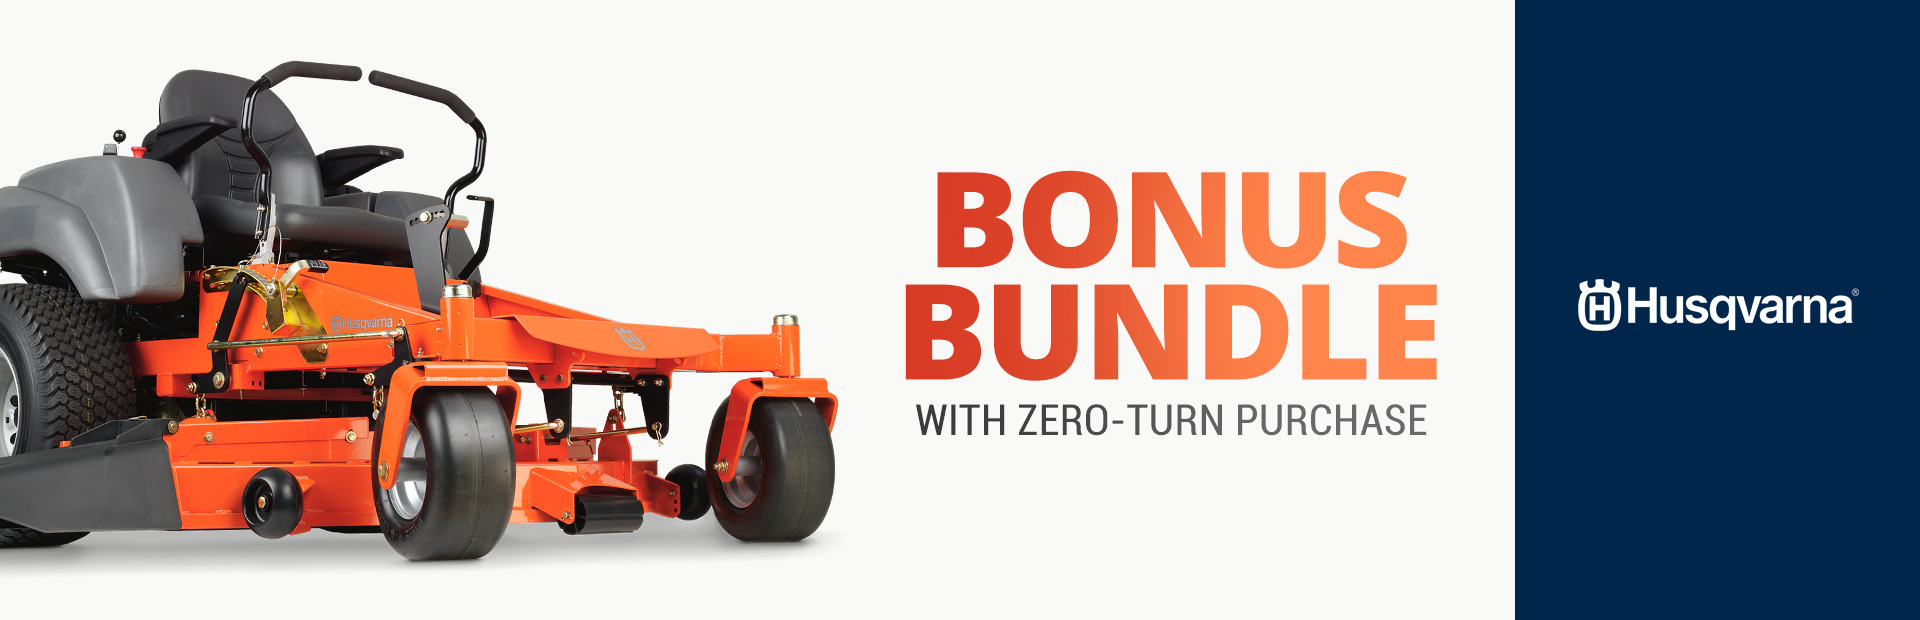 Bonus Bundle With Zero-Turn Purchase